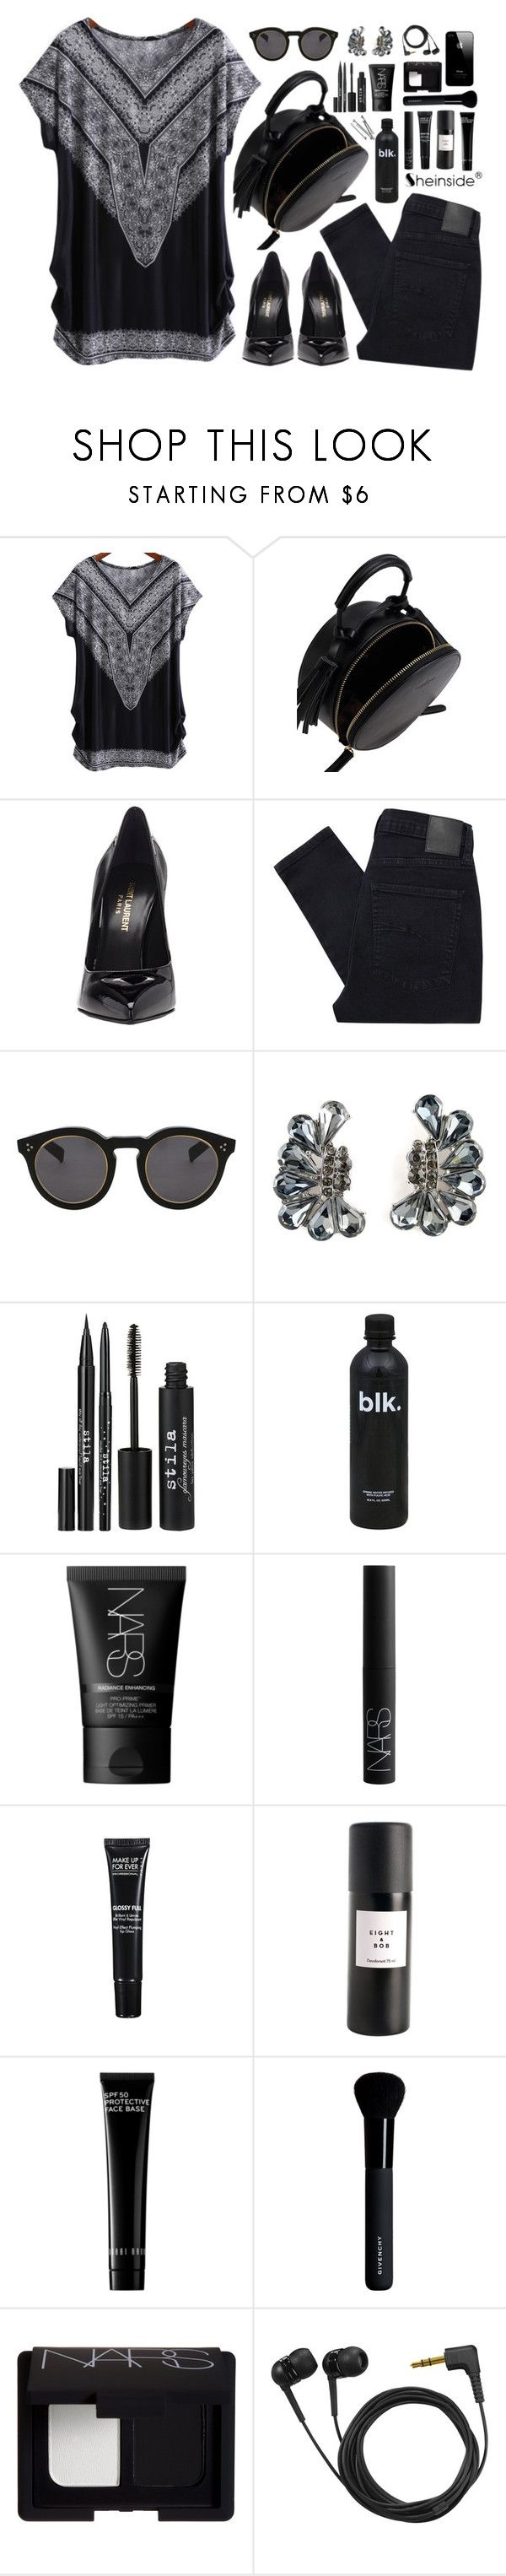 """""""SheIn 1"""" by scarlett-morwenna ❤ liked on Polyvore featuring Yves Saint Laurent, Nobody Denim, Illesteva, Stila, BOBBY, NARS Cosmetics, MAKE UP FOR EVER, Eight & Bob, Bobbi Brown Cosmetics and Givenchy"""